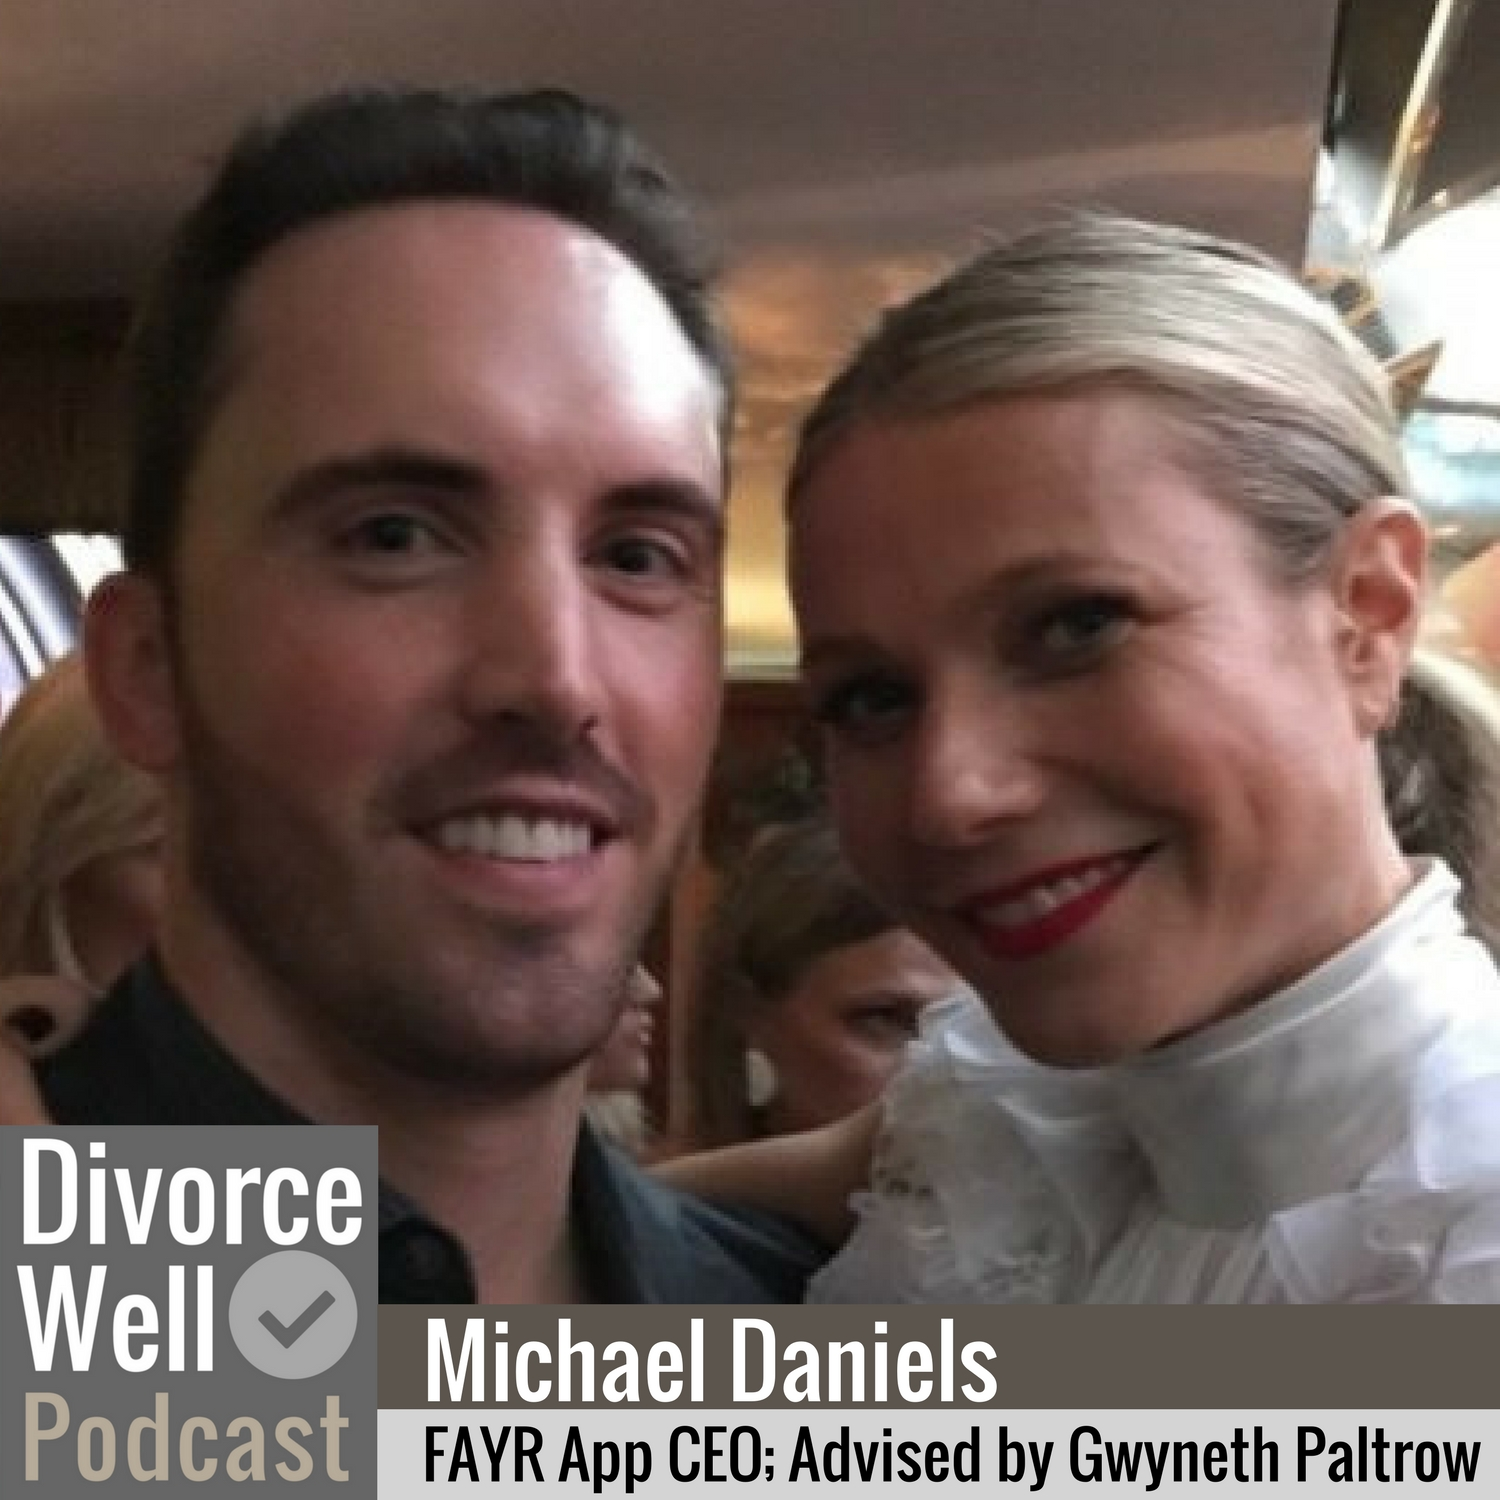 The Divorce Well Podcast - 06 - Michael Daniels on the FAYR app, Gwyneth Paltrow's mentorship, and streamlining co-parenting